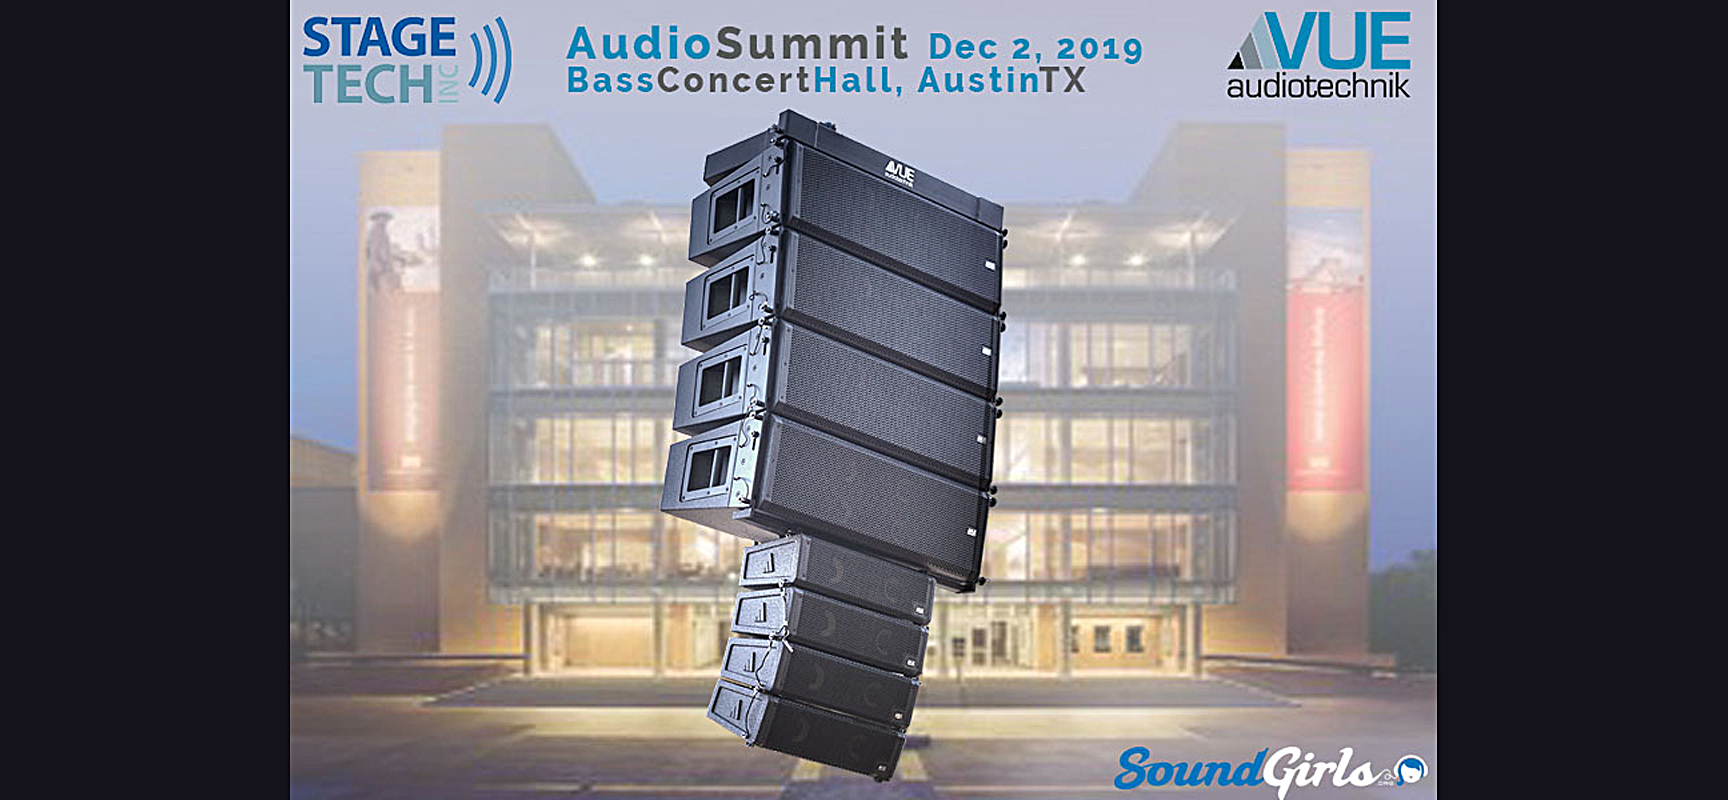 VUE, Stage Tech and Sound Girls Present Audio Summit in Austin